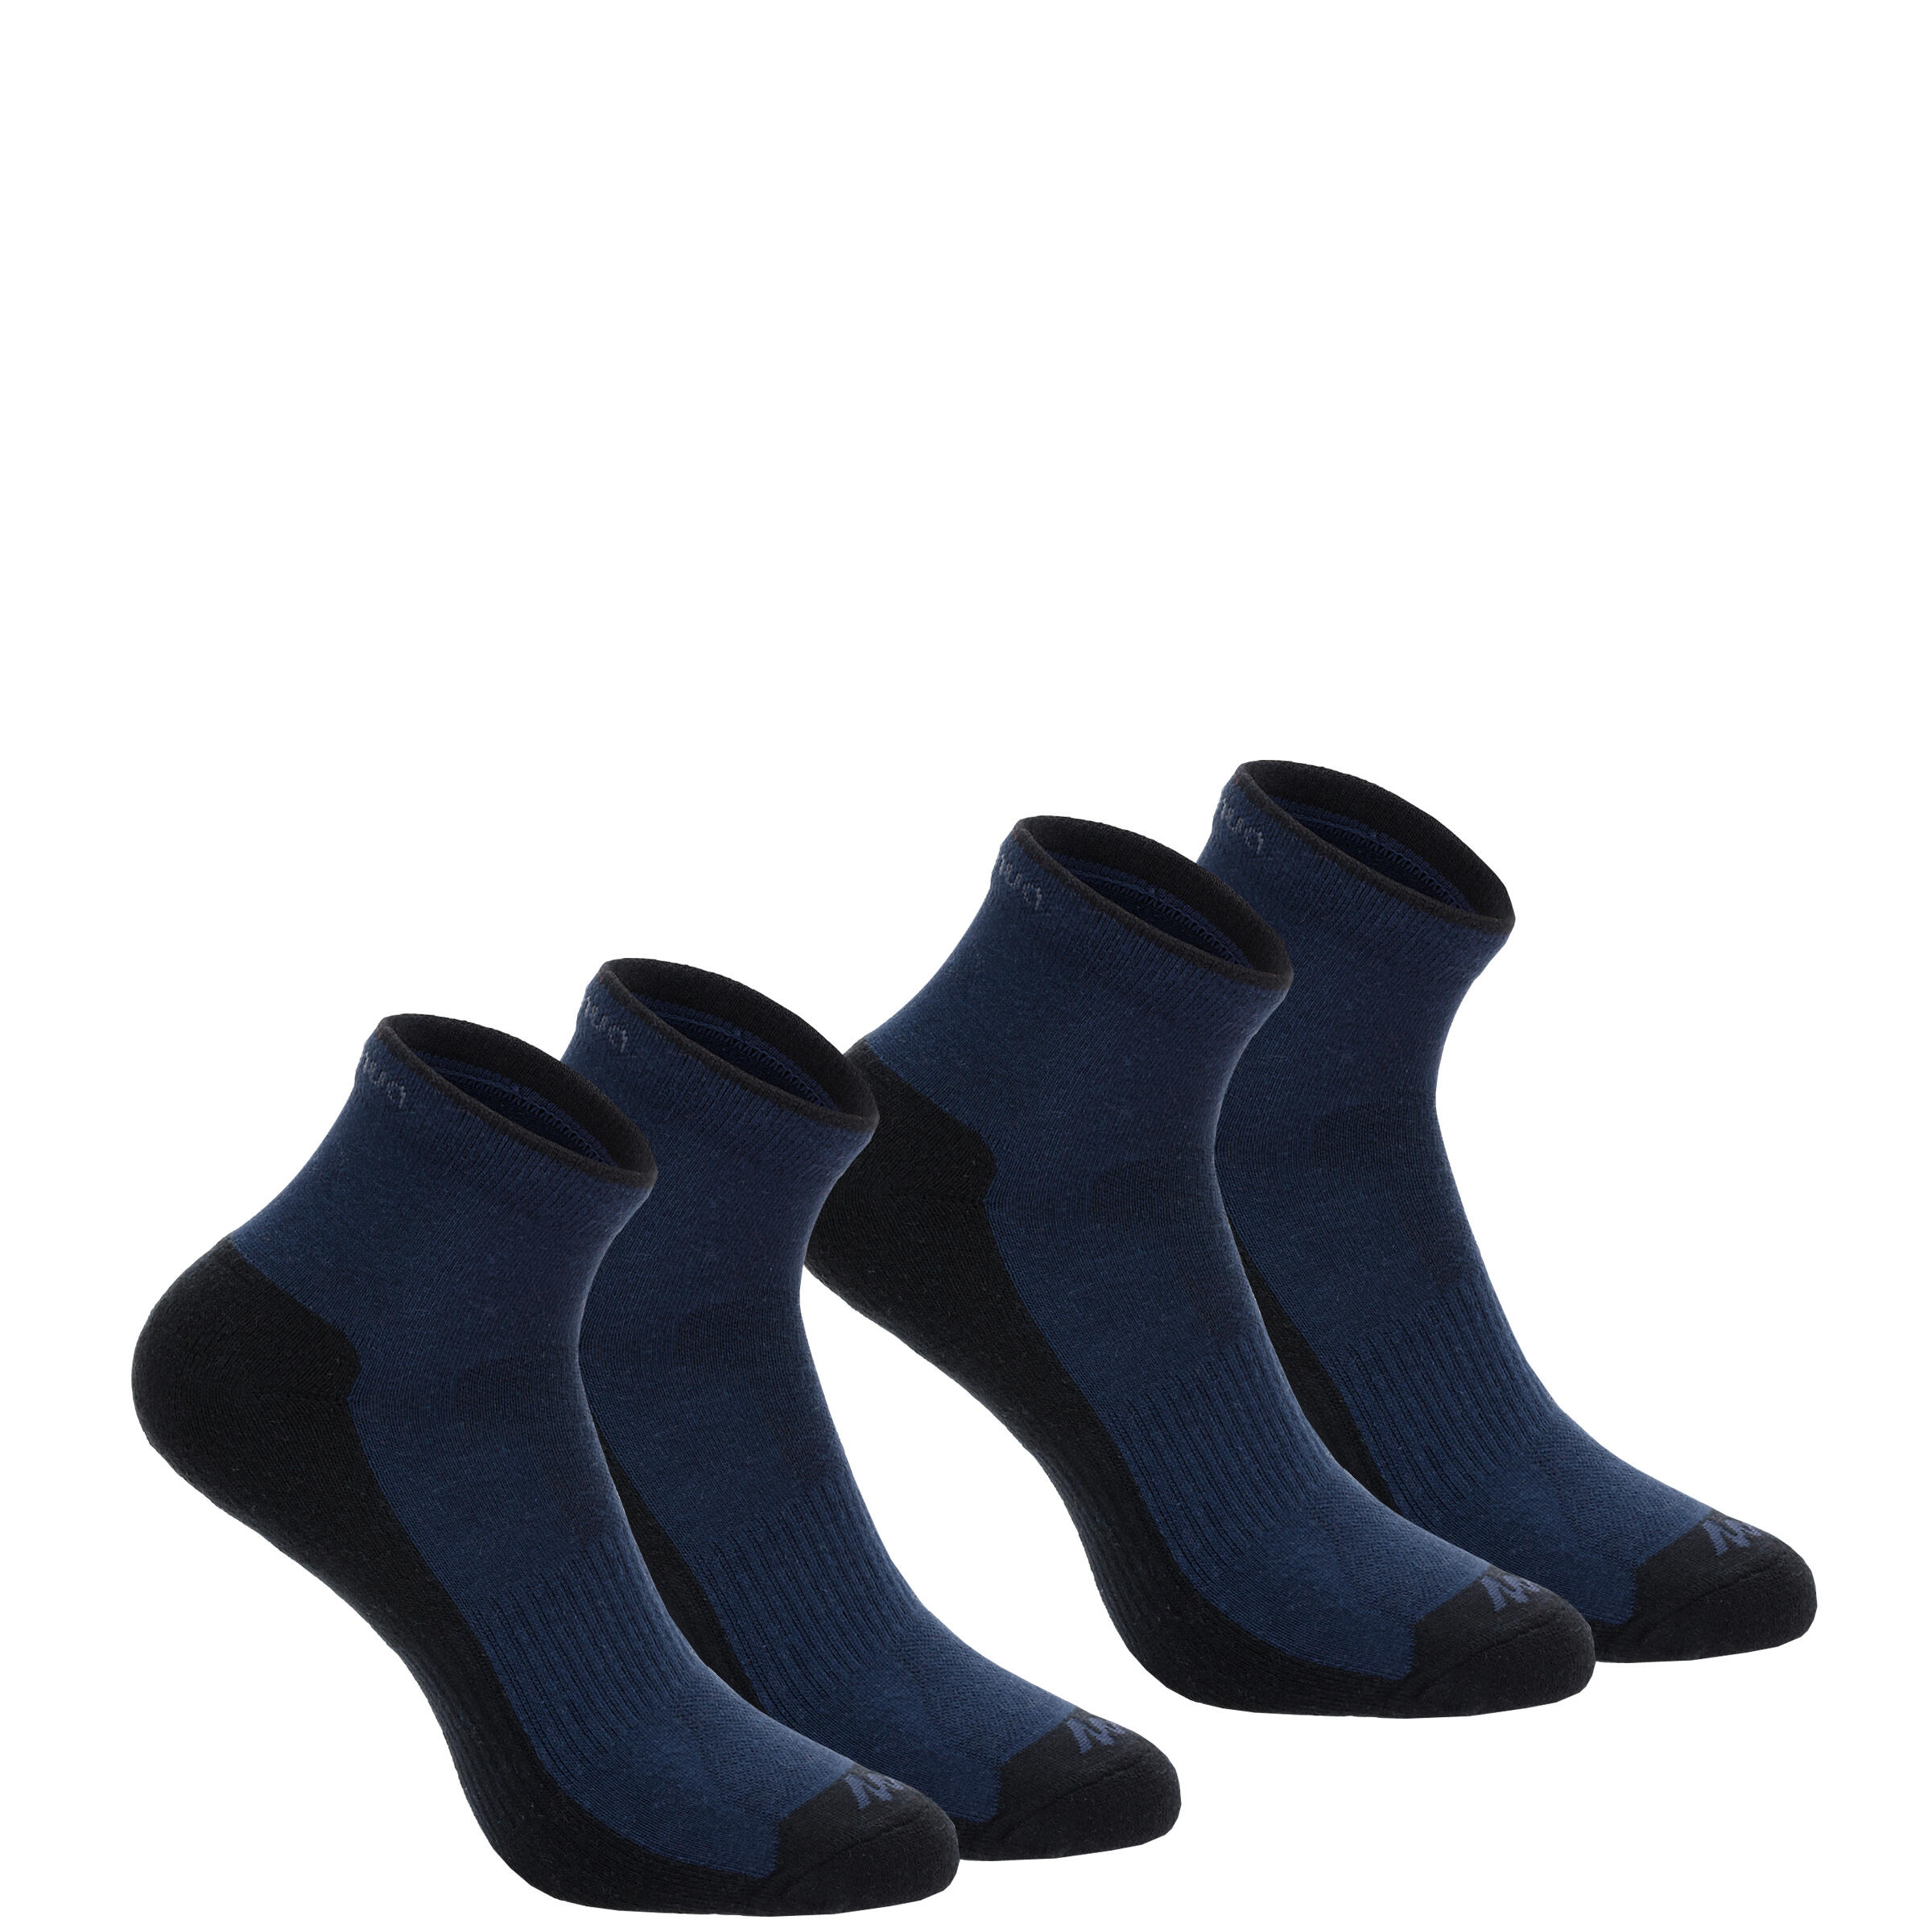 2 pairs of medium length adult Arpenaz 50 hiking socks - Blue